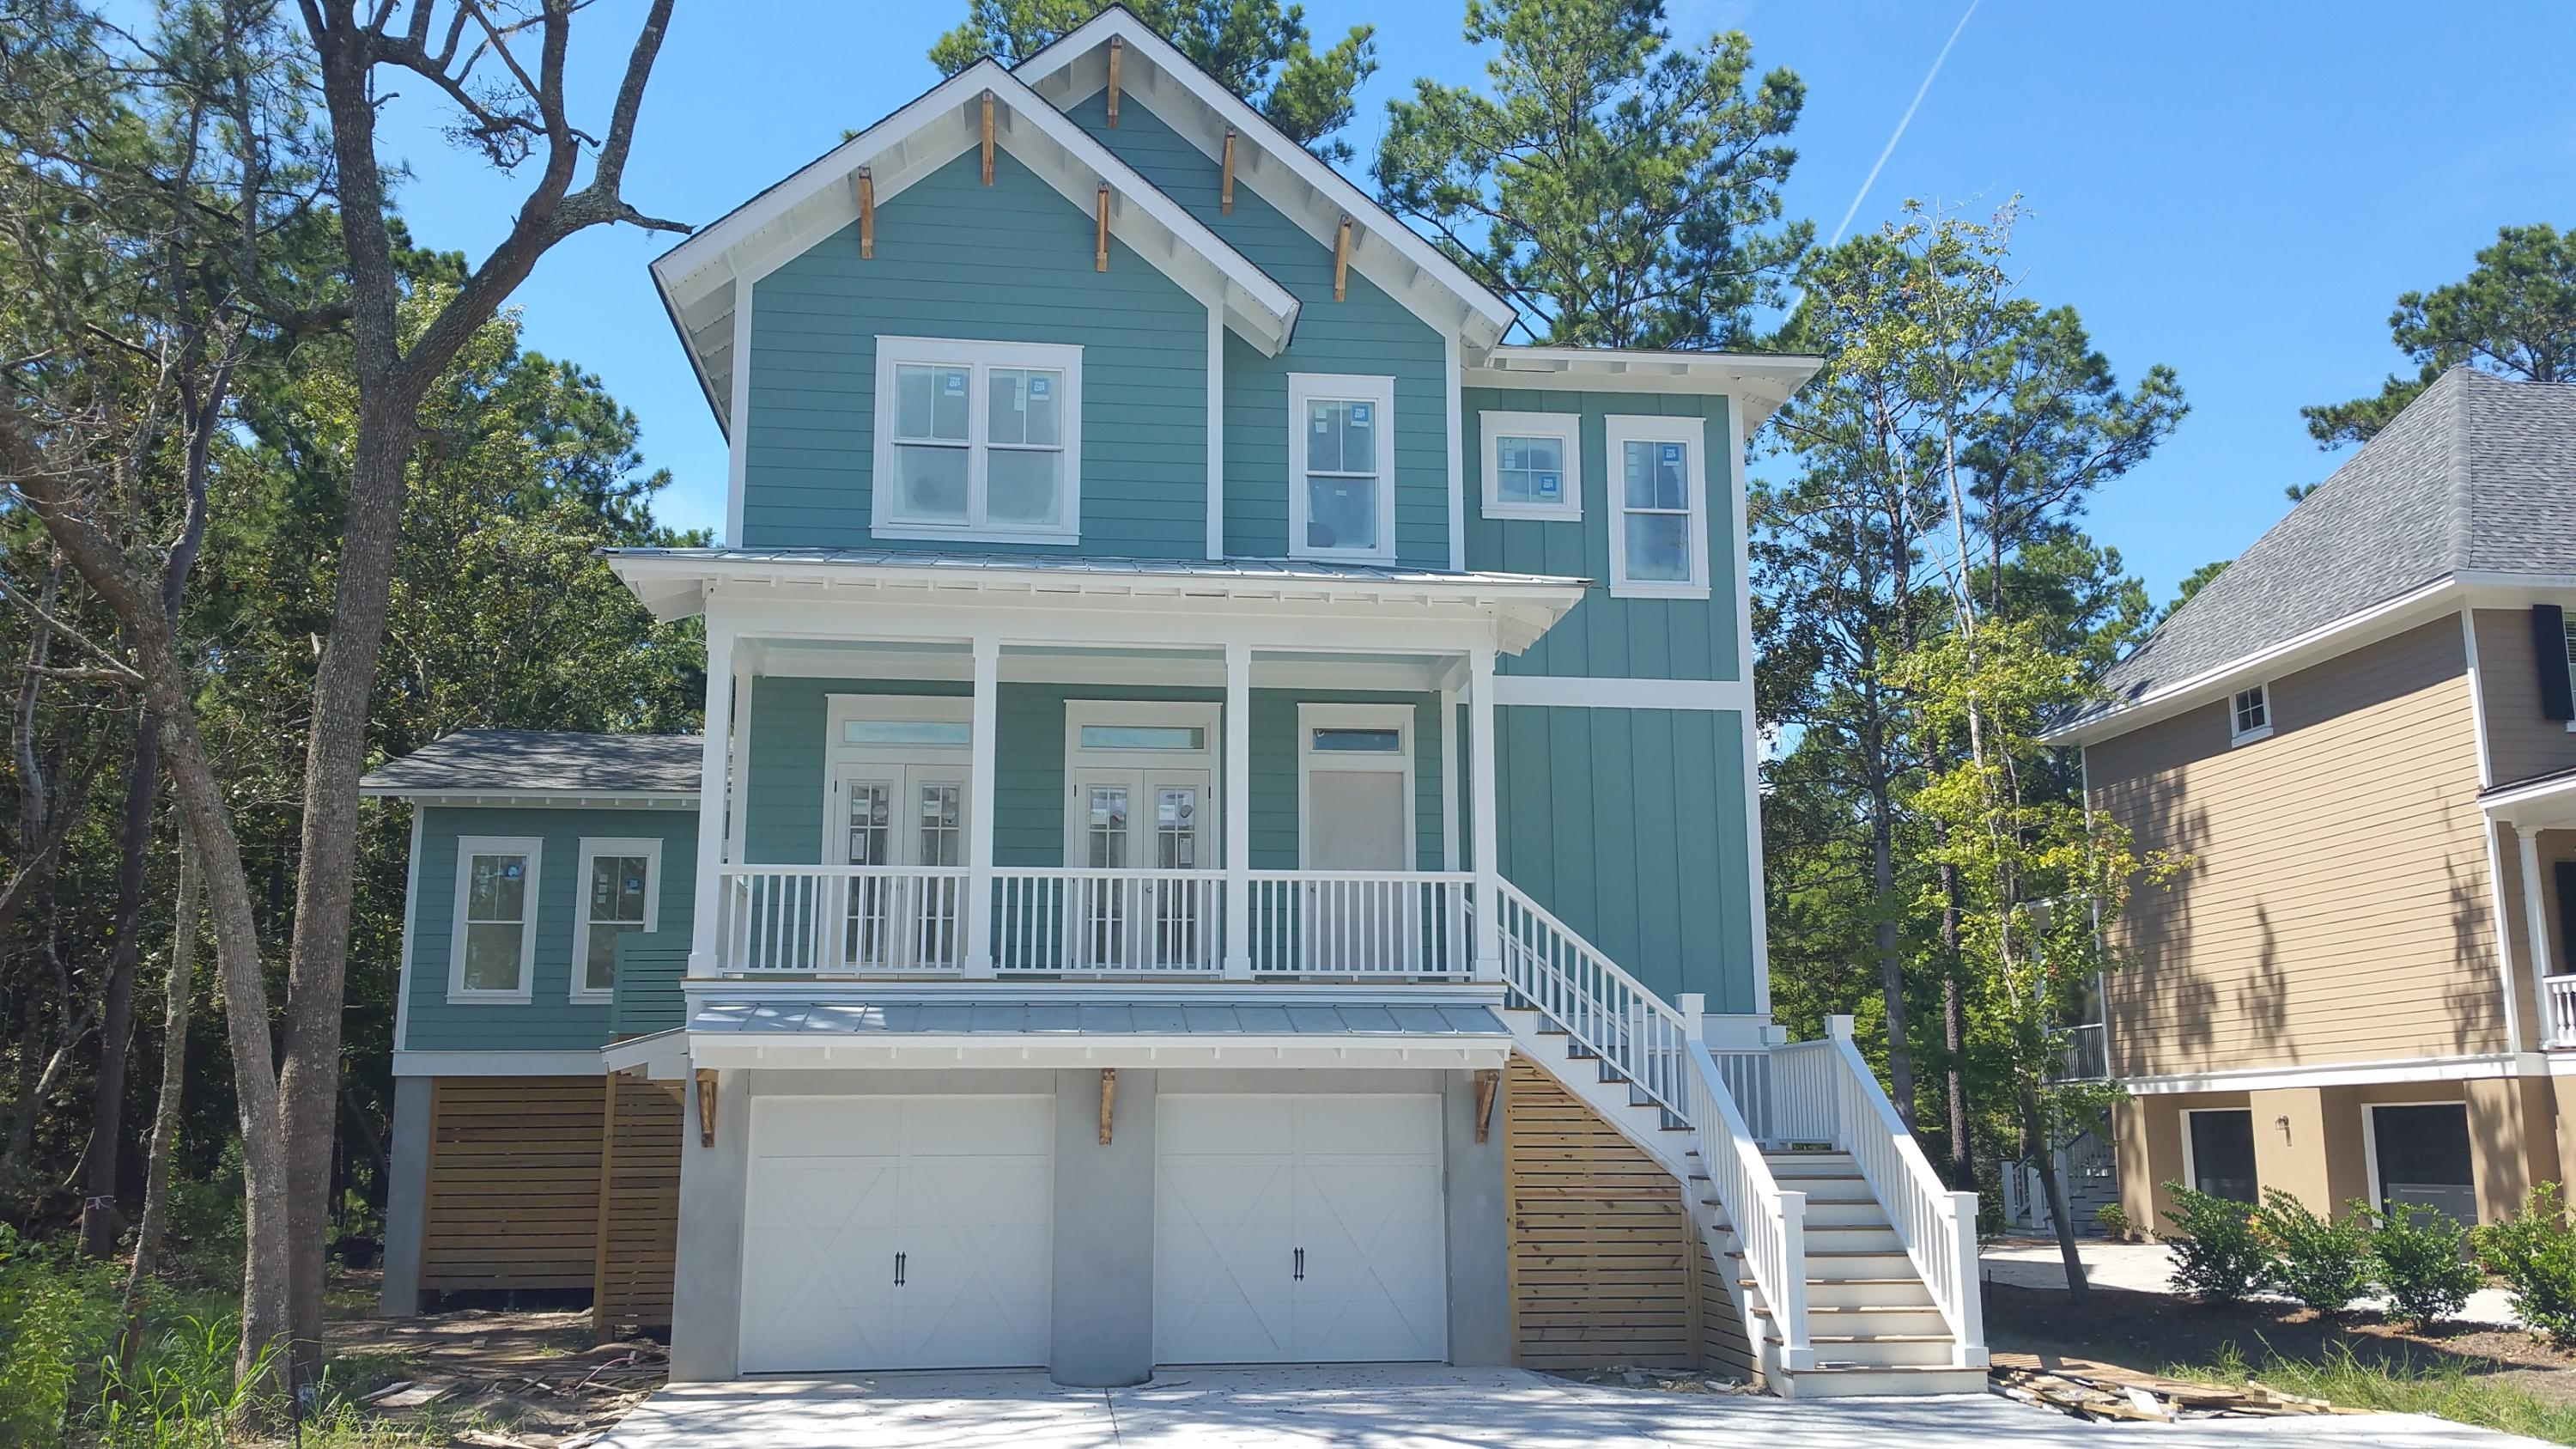 Photo of 1585 John Fenwick Ln, Johns Island, SC 29455